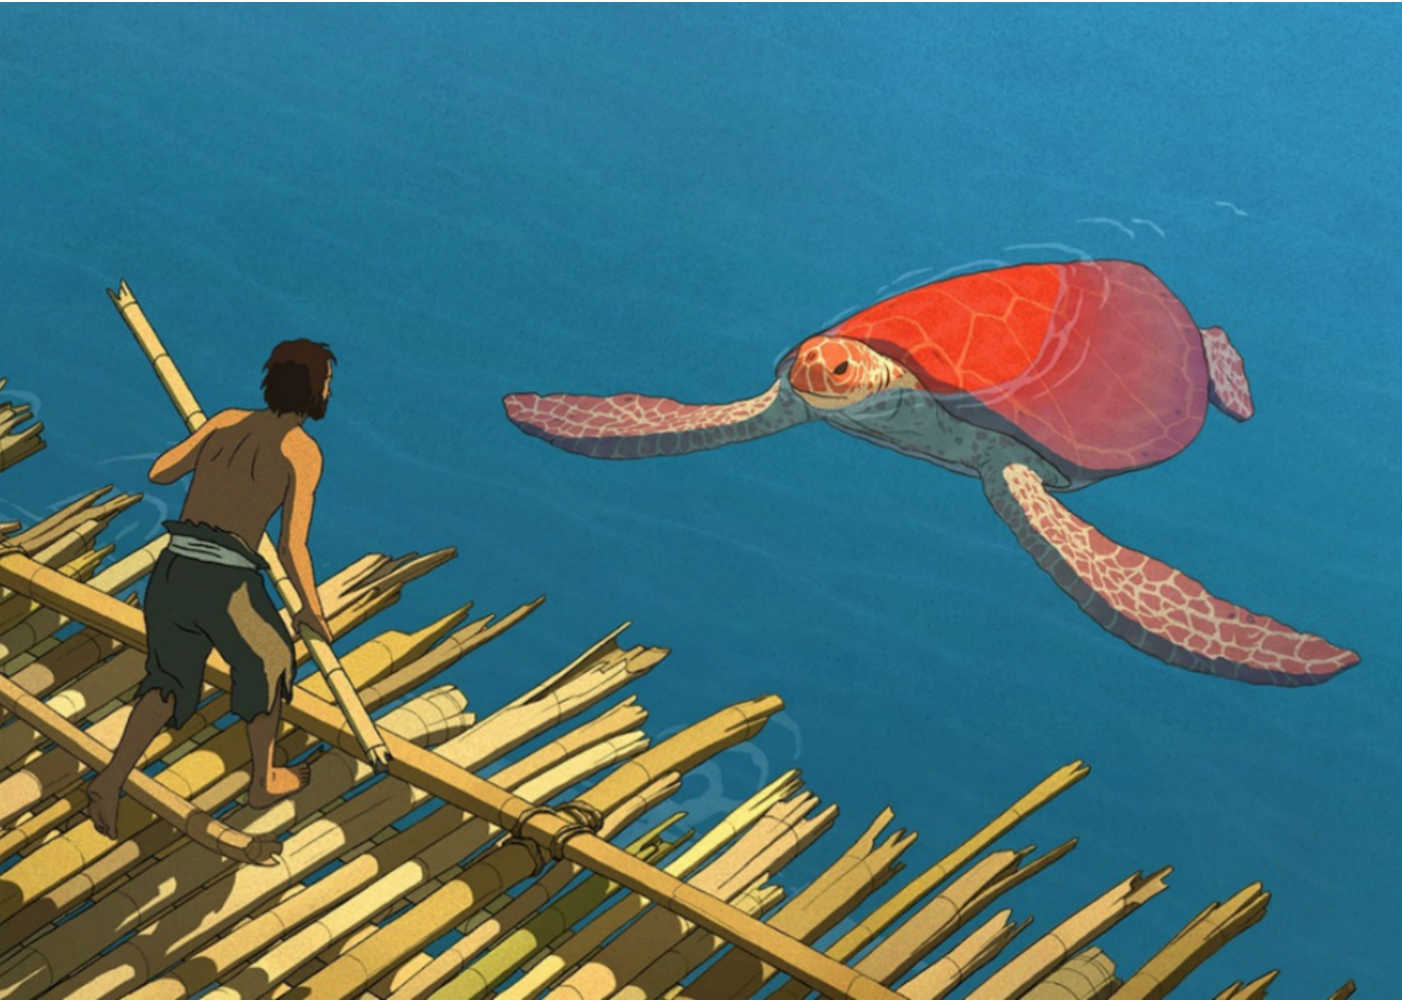 Review: The Red Turtle is a Fable of Beauty and Wonder